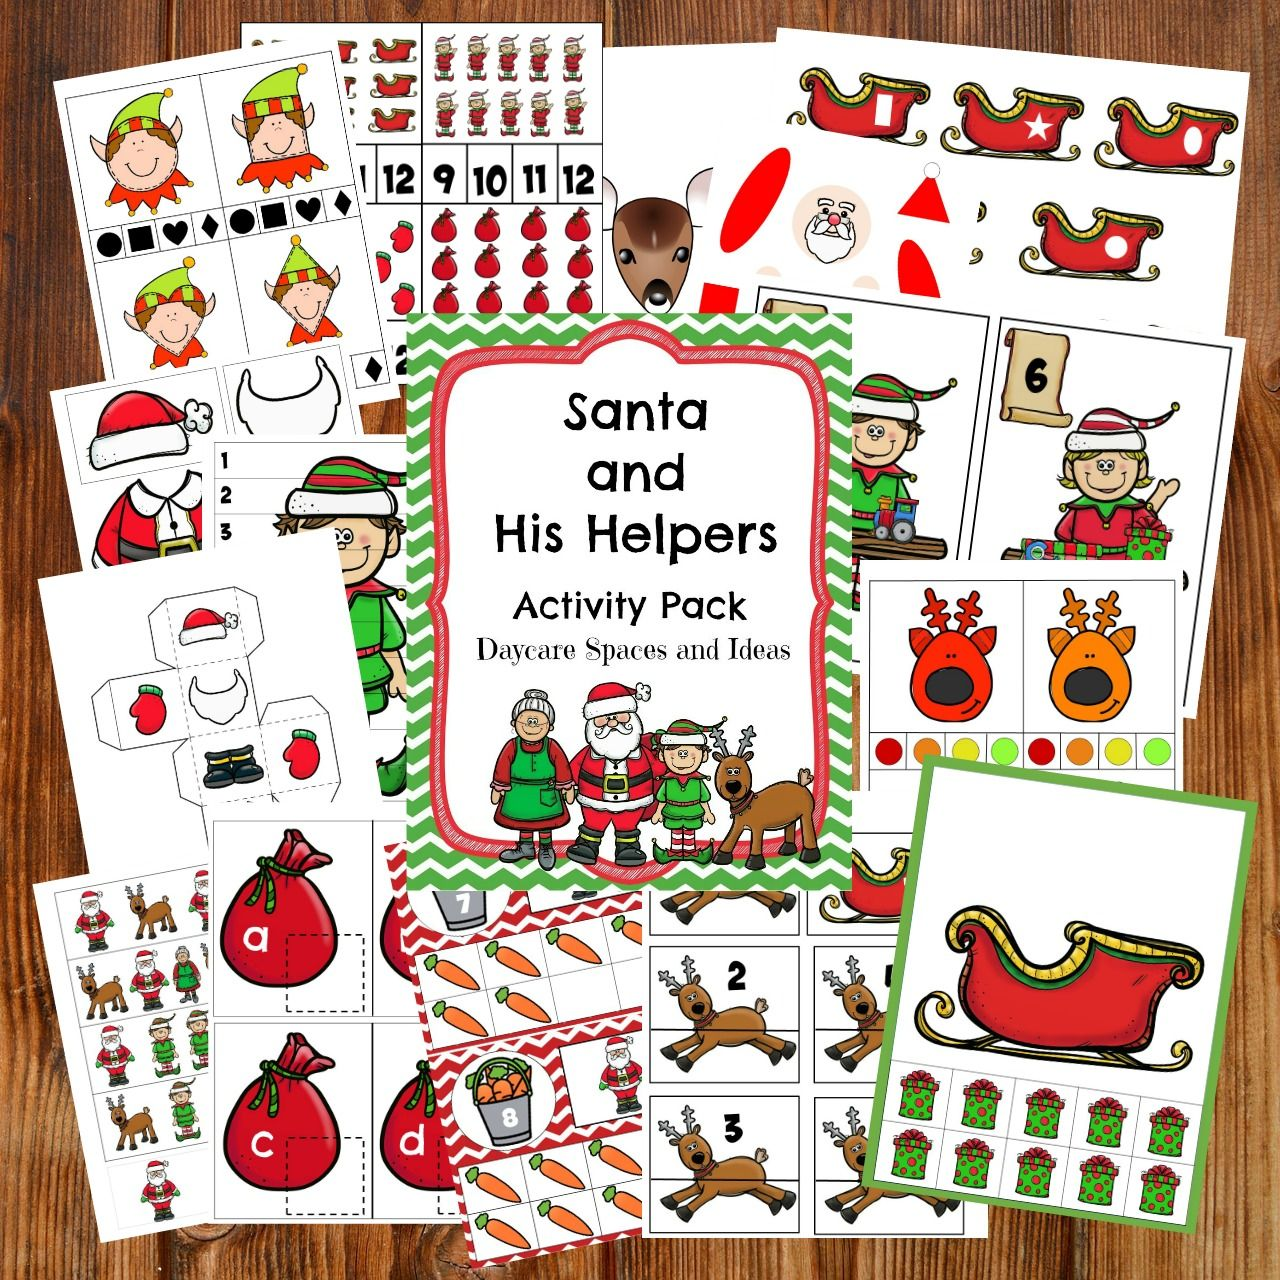 Santa And His Helpers Activity Pack